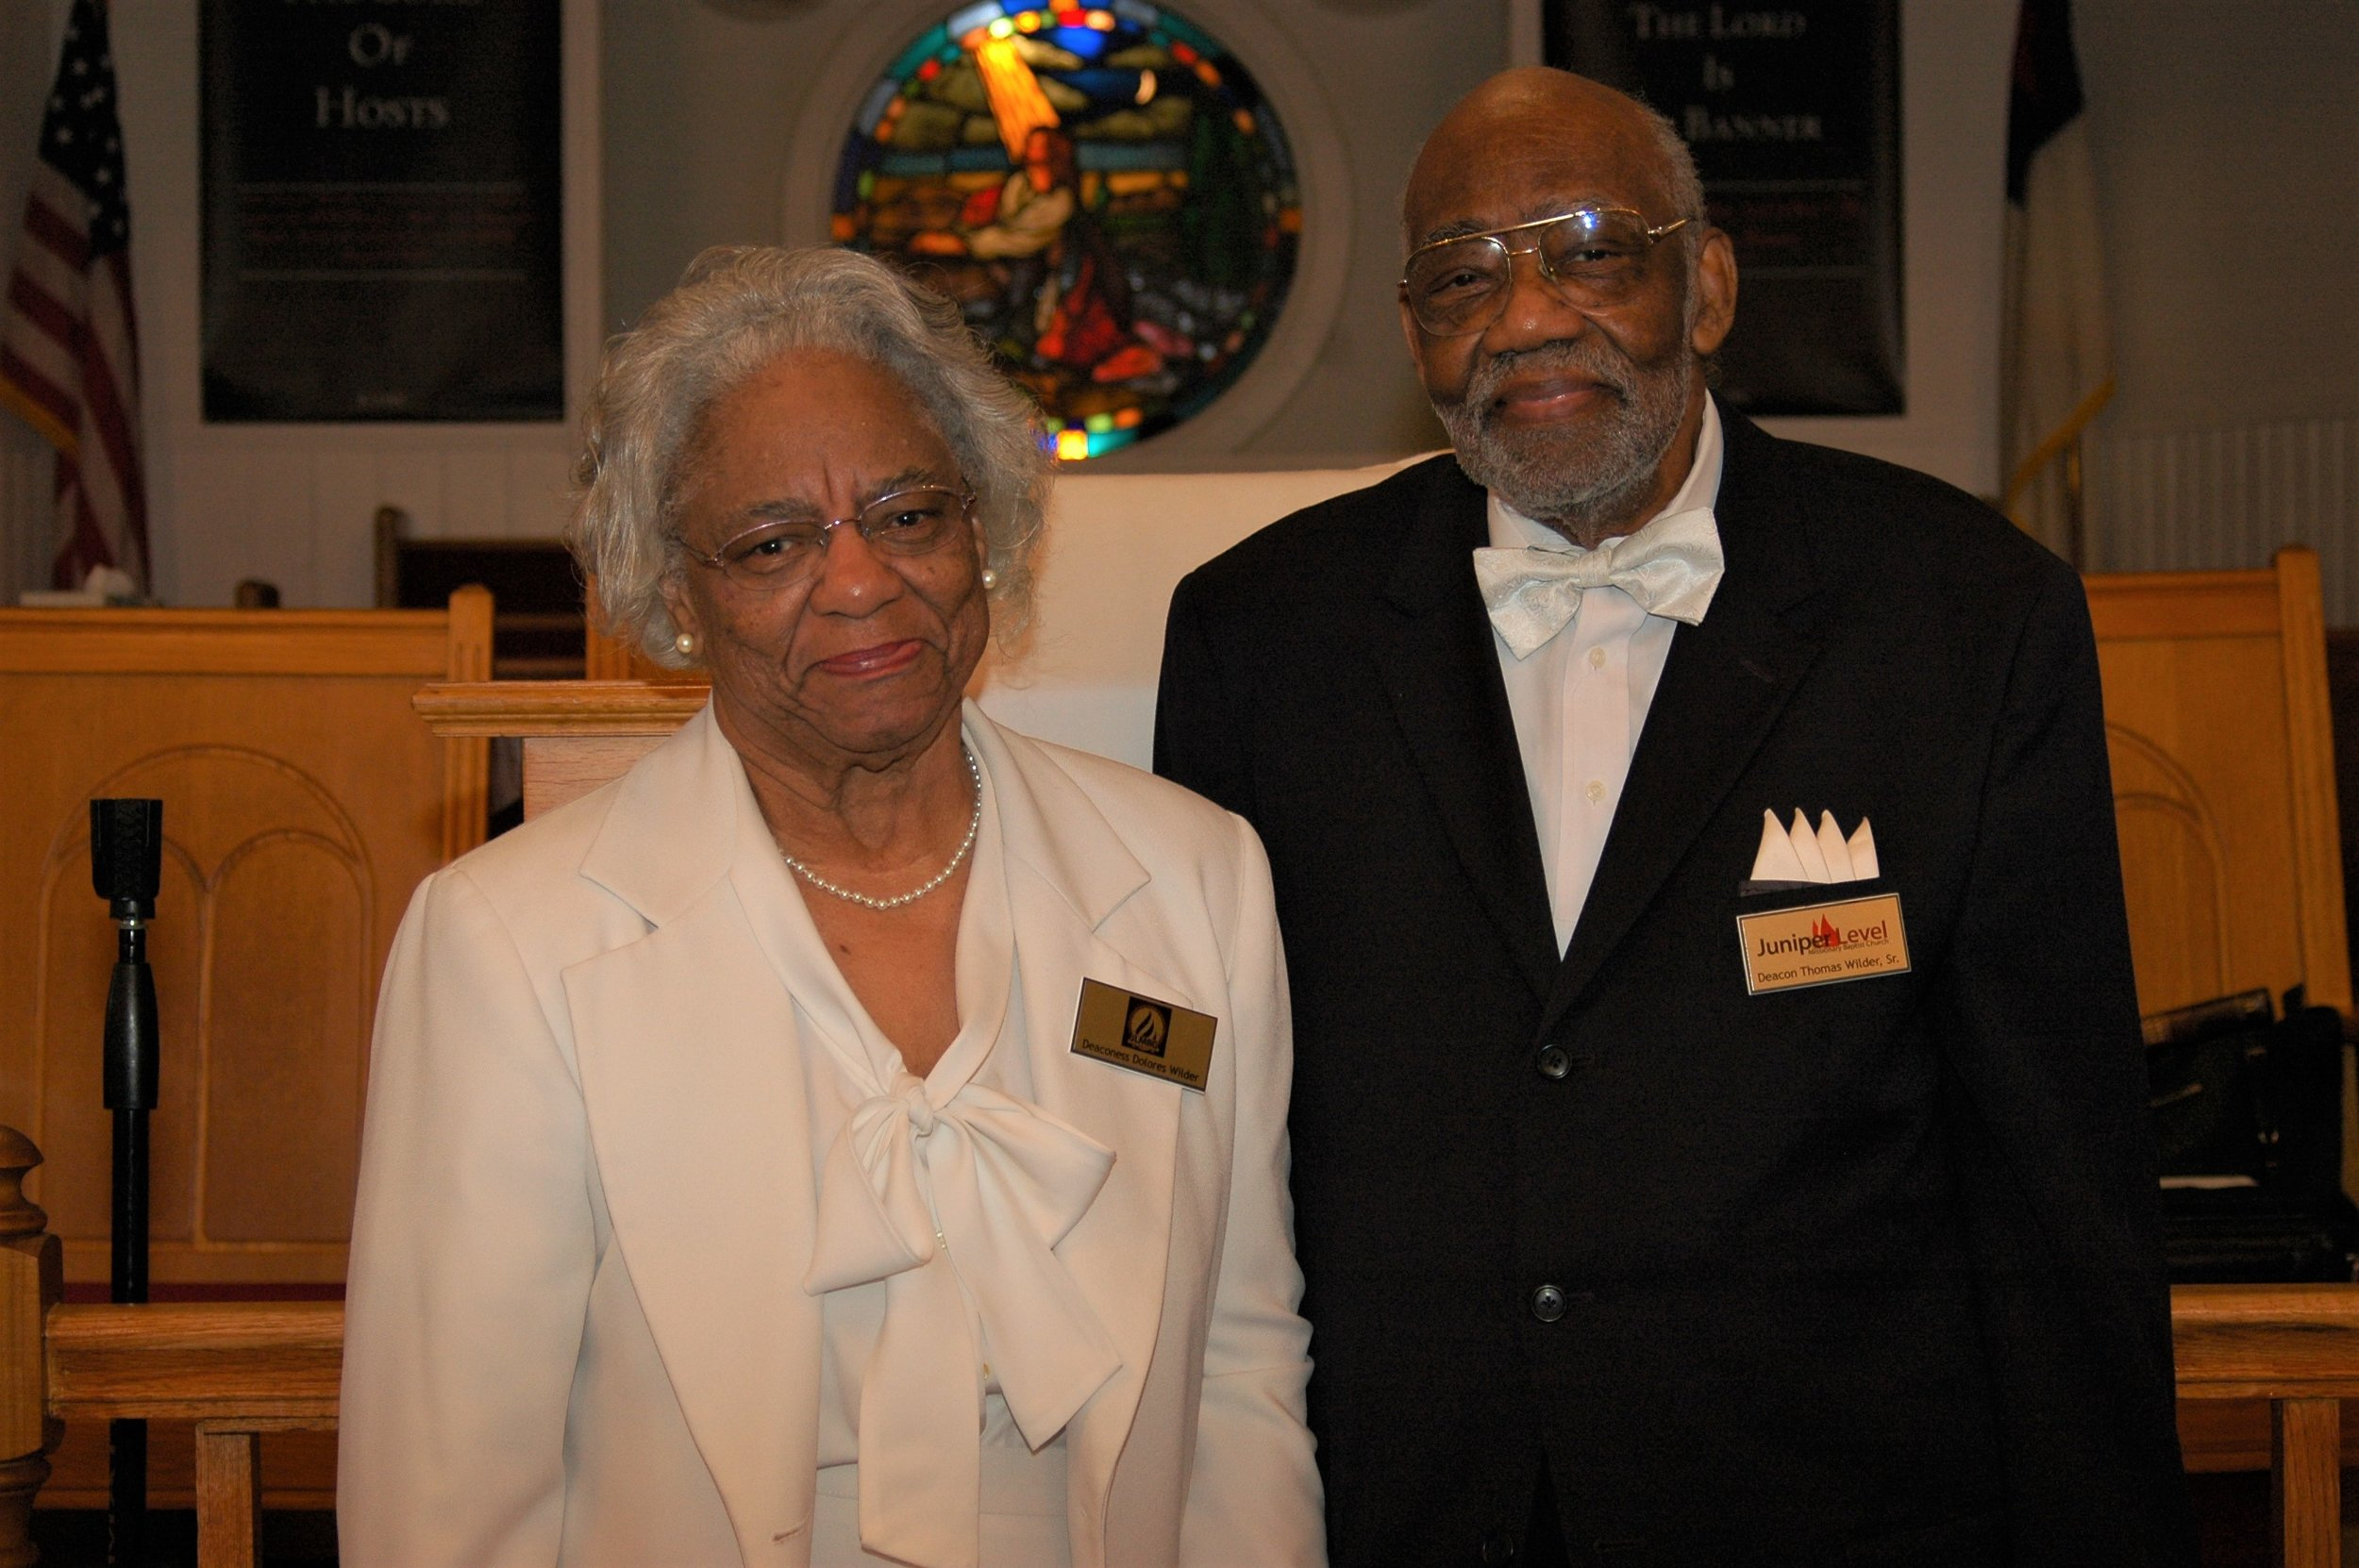 Deacon and Deaconess Thomas and Delores Wilder